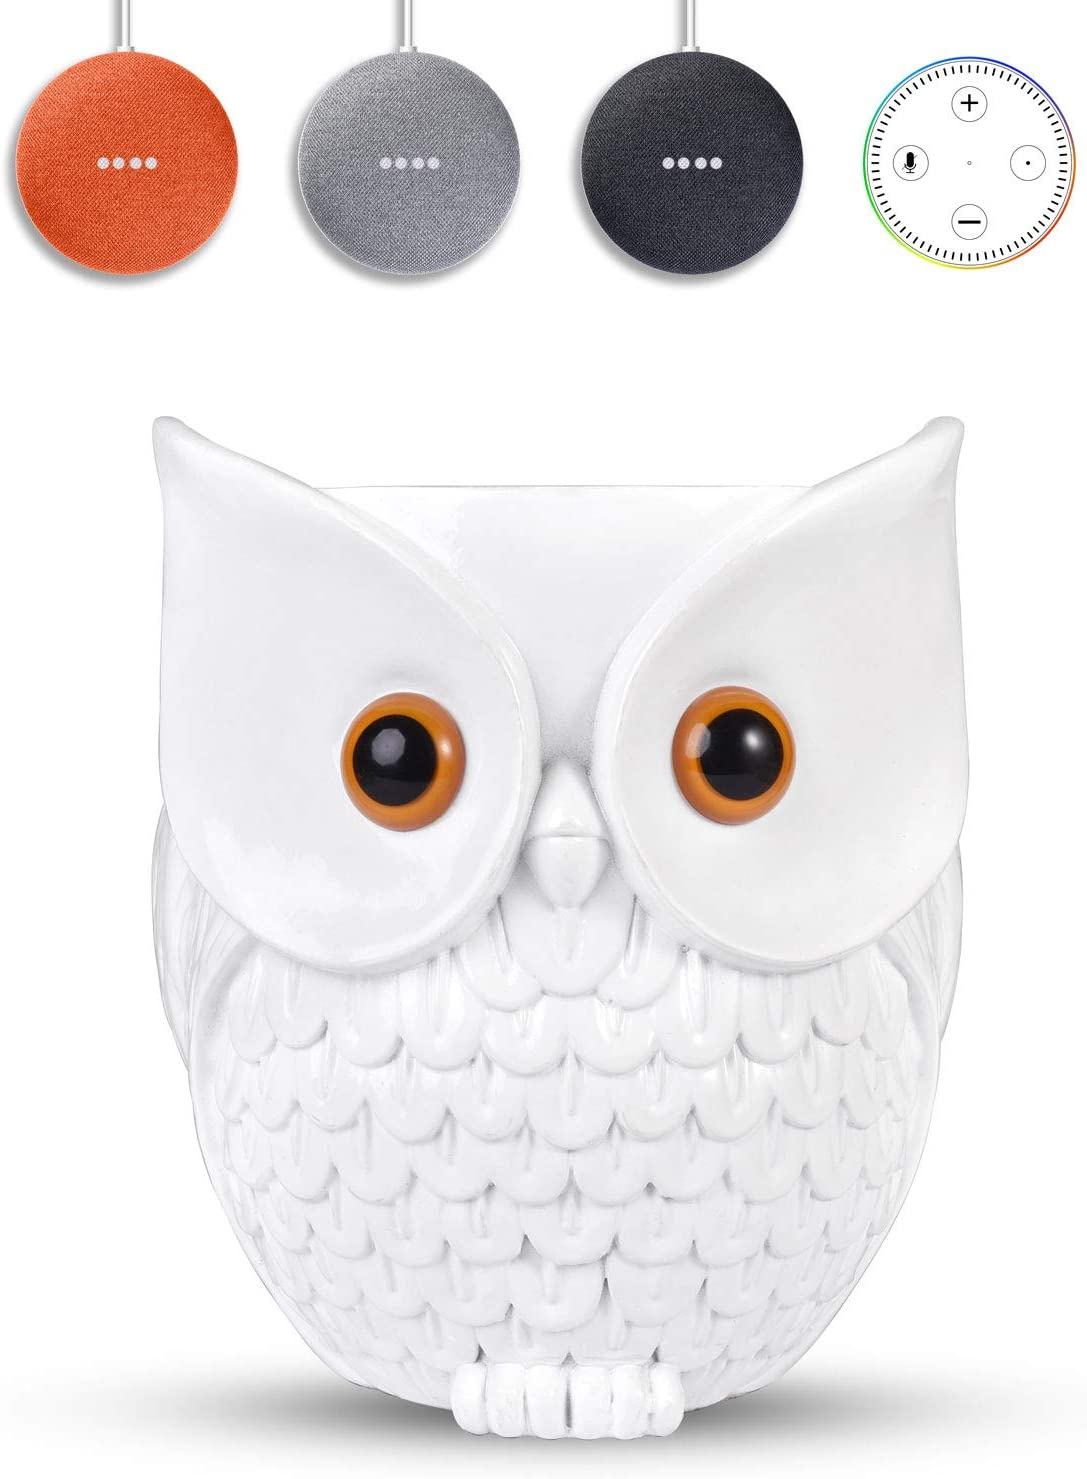 KeyEntre Owl Shape Smart Home Guard Owl Statue Crafted Guard Station for Google Home Mini Google Nest Mini (2nd Gen), Clean, Space Saving, Guard Holder Guard Station